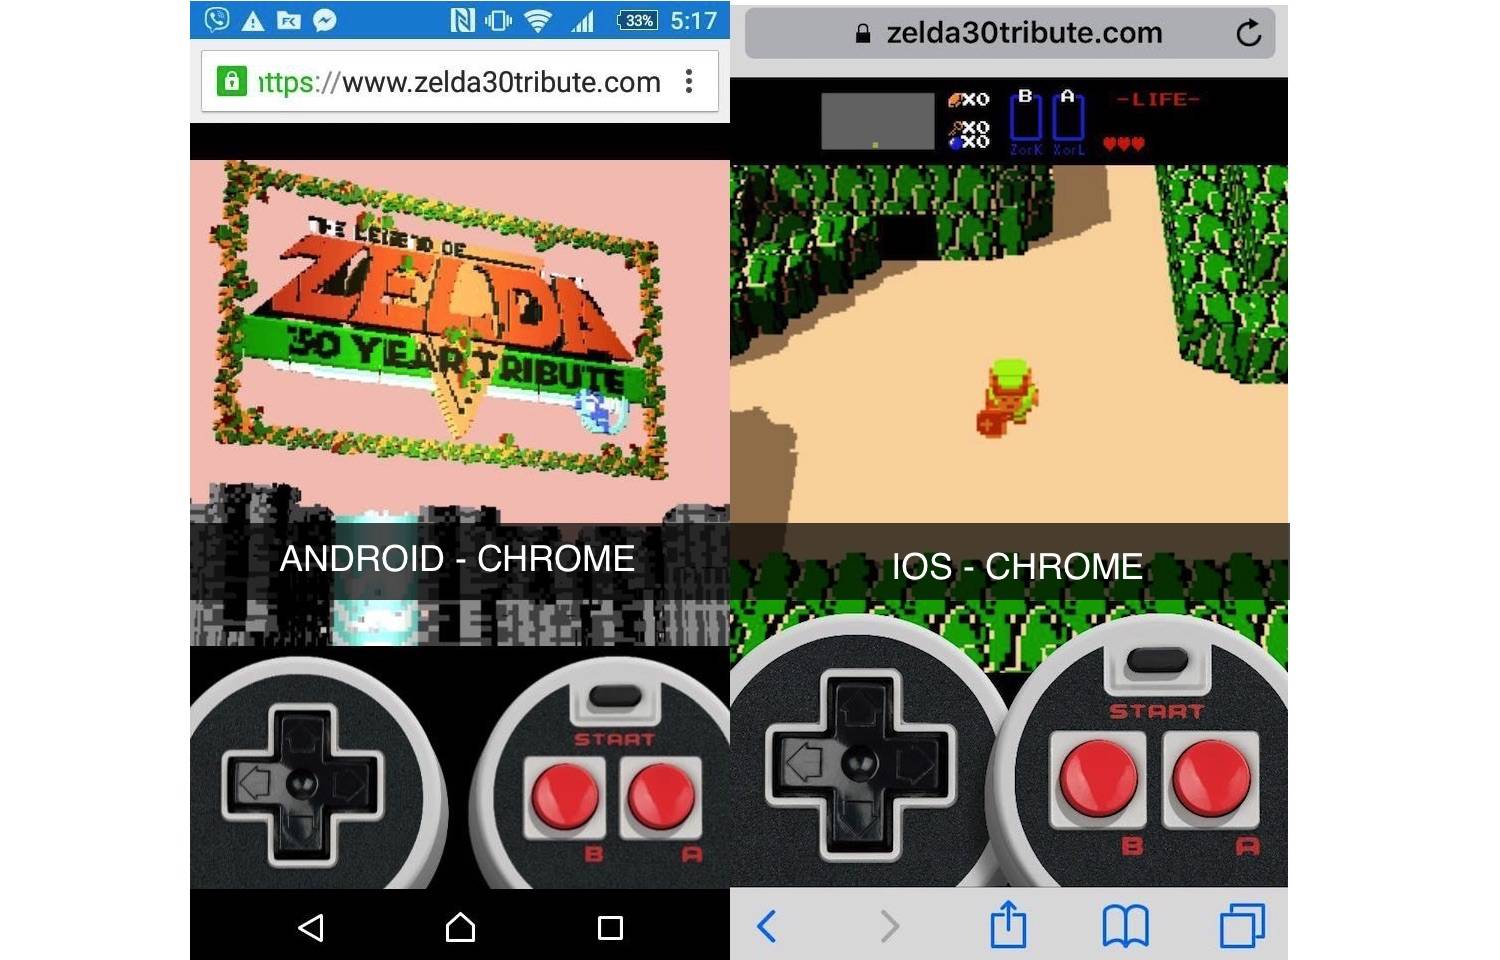 Zelda 30 Tribute Mobile Browsers Android and iOS